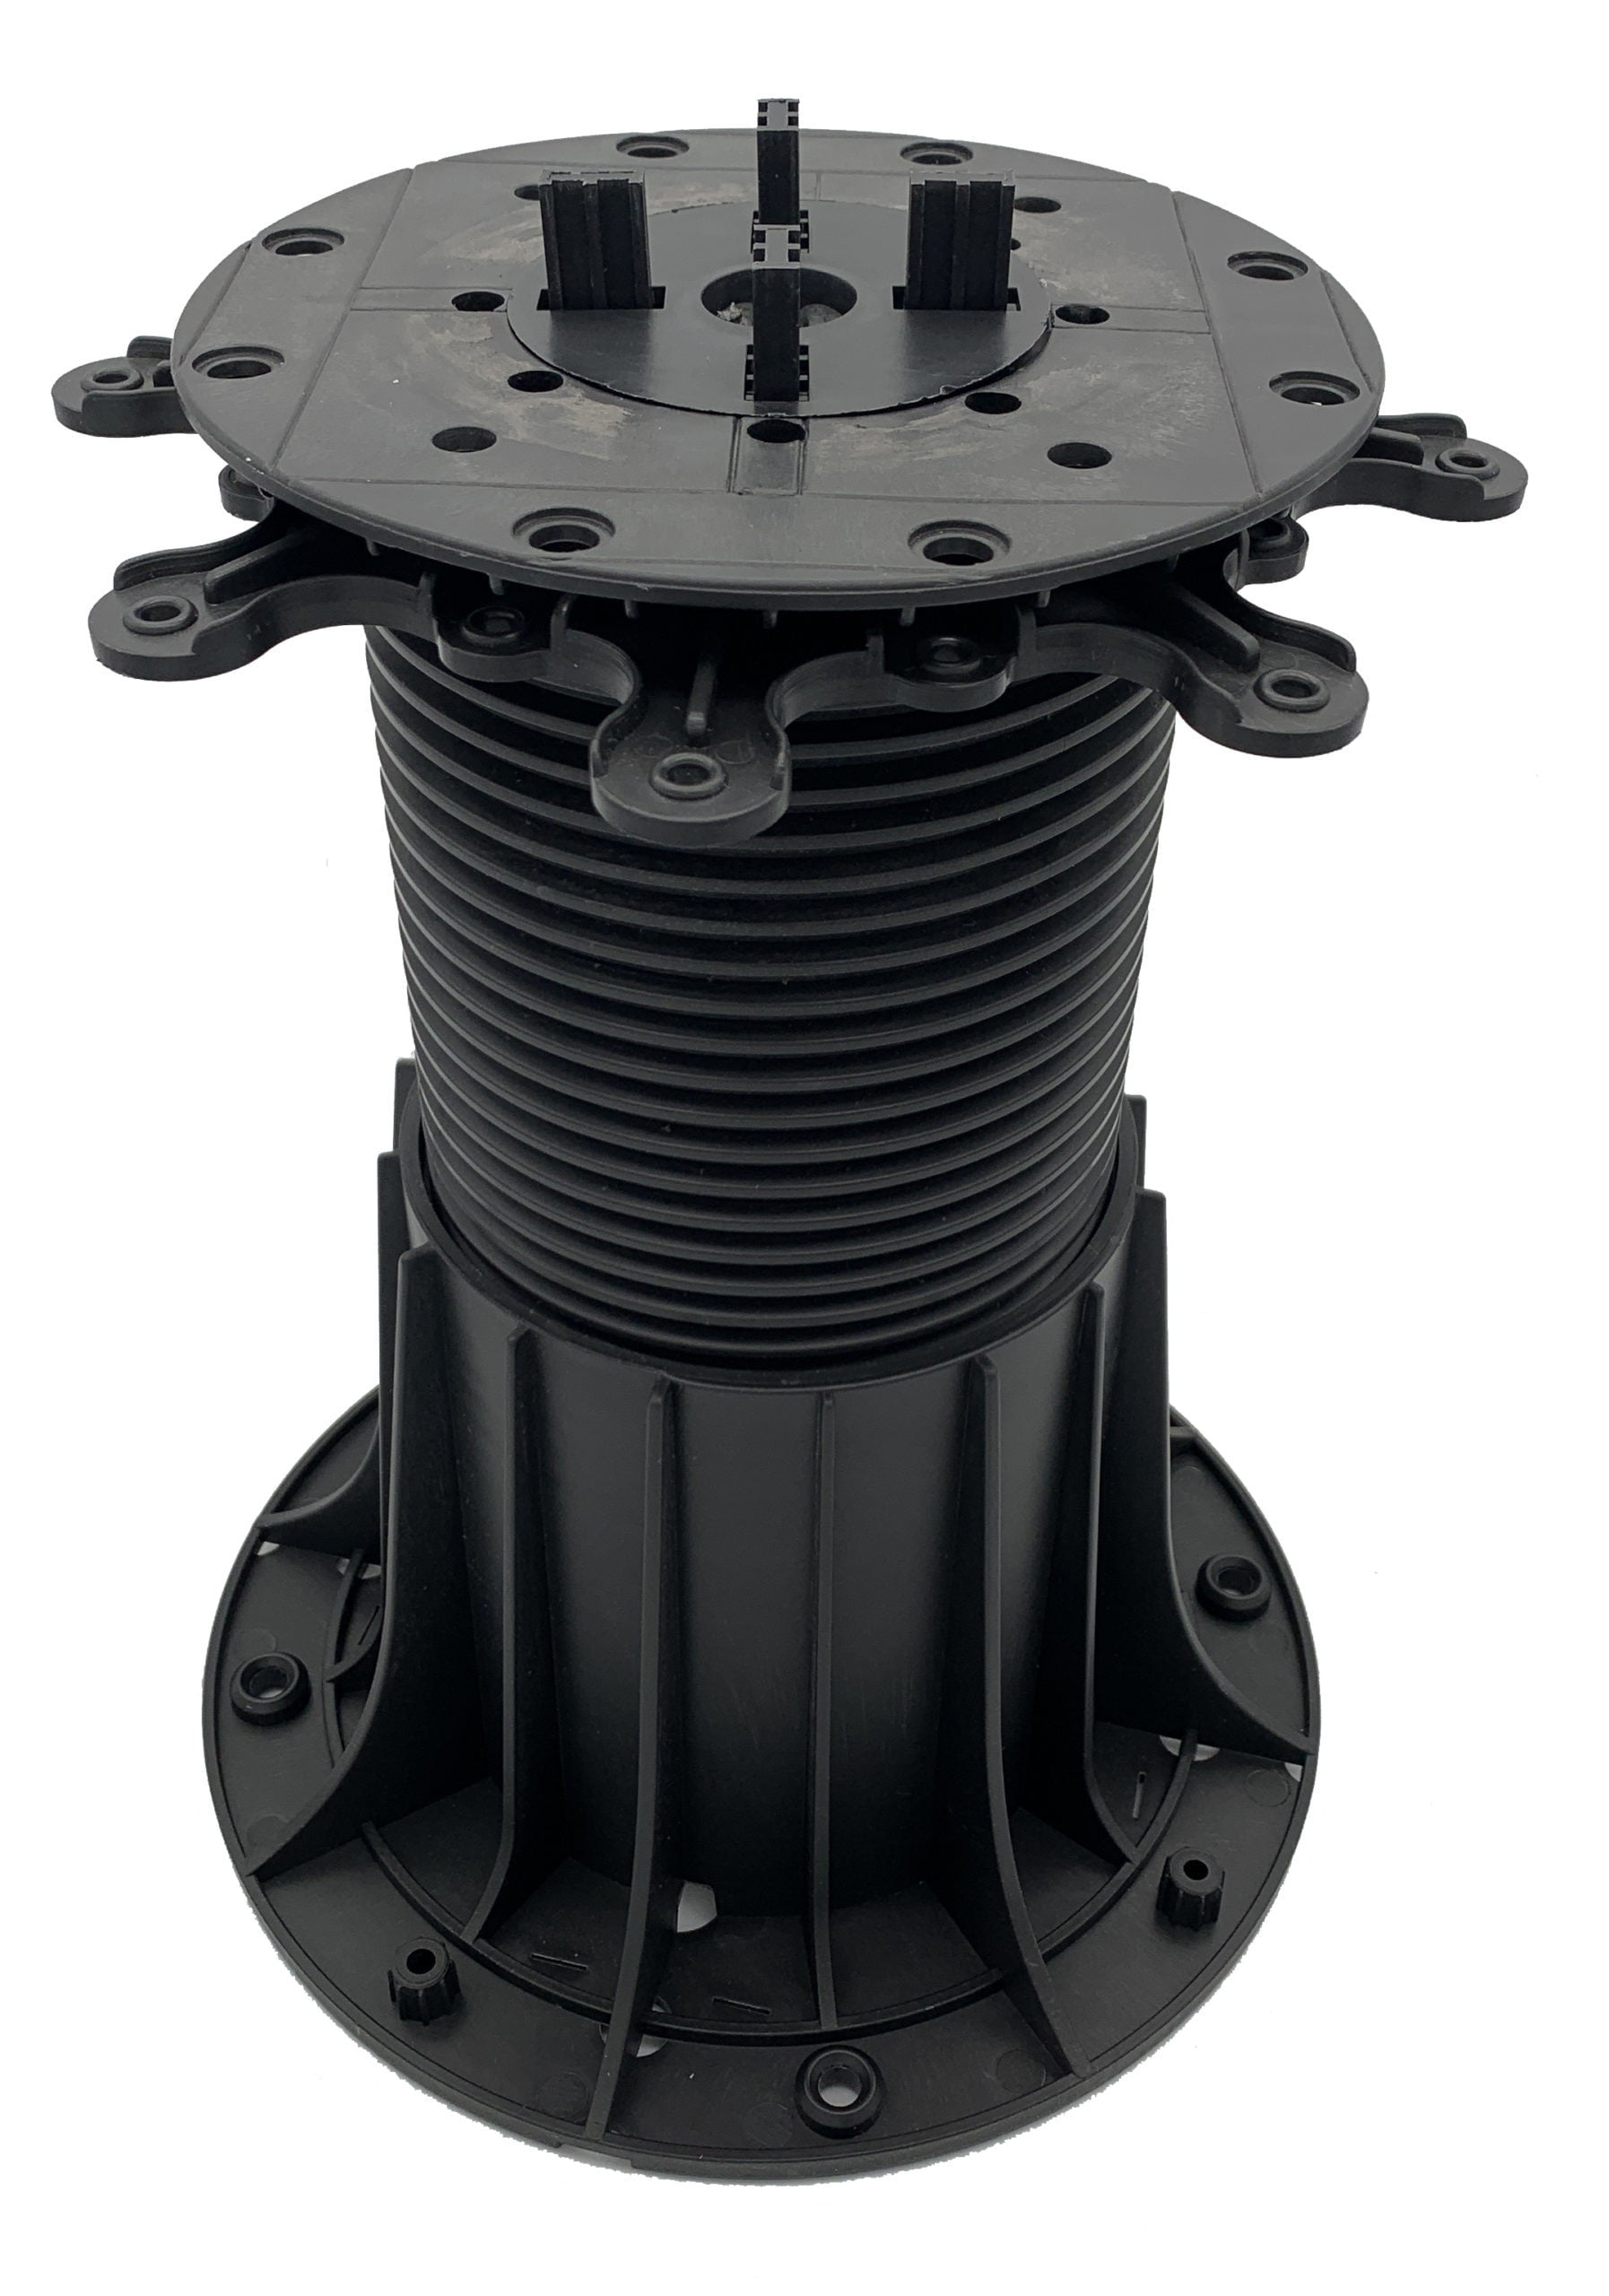 """Our SkyJack GRIT line of pedestals provide incredible strength at extreme heights.  With adjustability from 5.9"""" - 13.75"""", they make estimating pedestal heights easy.  Add on our SD-EXT-GRIT 8"""" extenders to achieve heights up to 38"""".  SkyJack GRIT pedestals allow you to level your pavers in seconds with adjustability using a drill from above.  SkyJack Pedestals are the fastest installing pedestal paver system on the market!"""